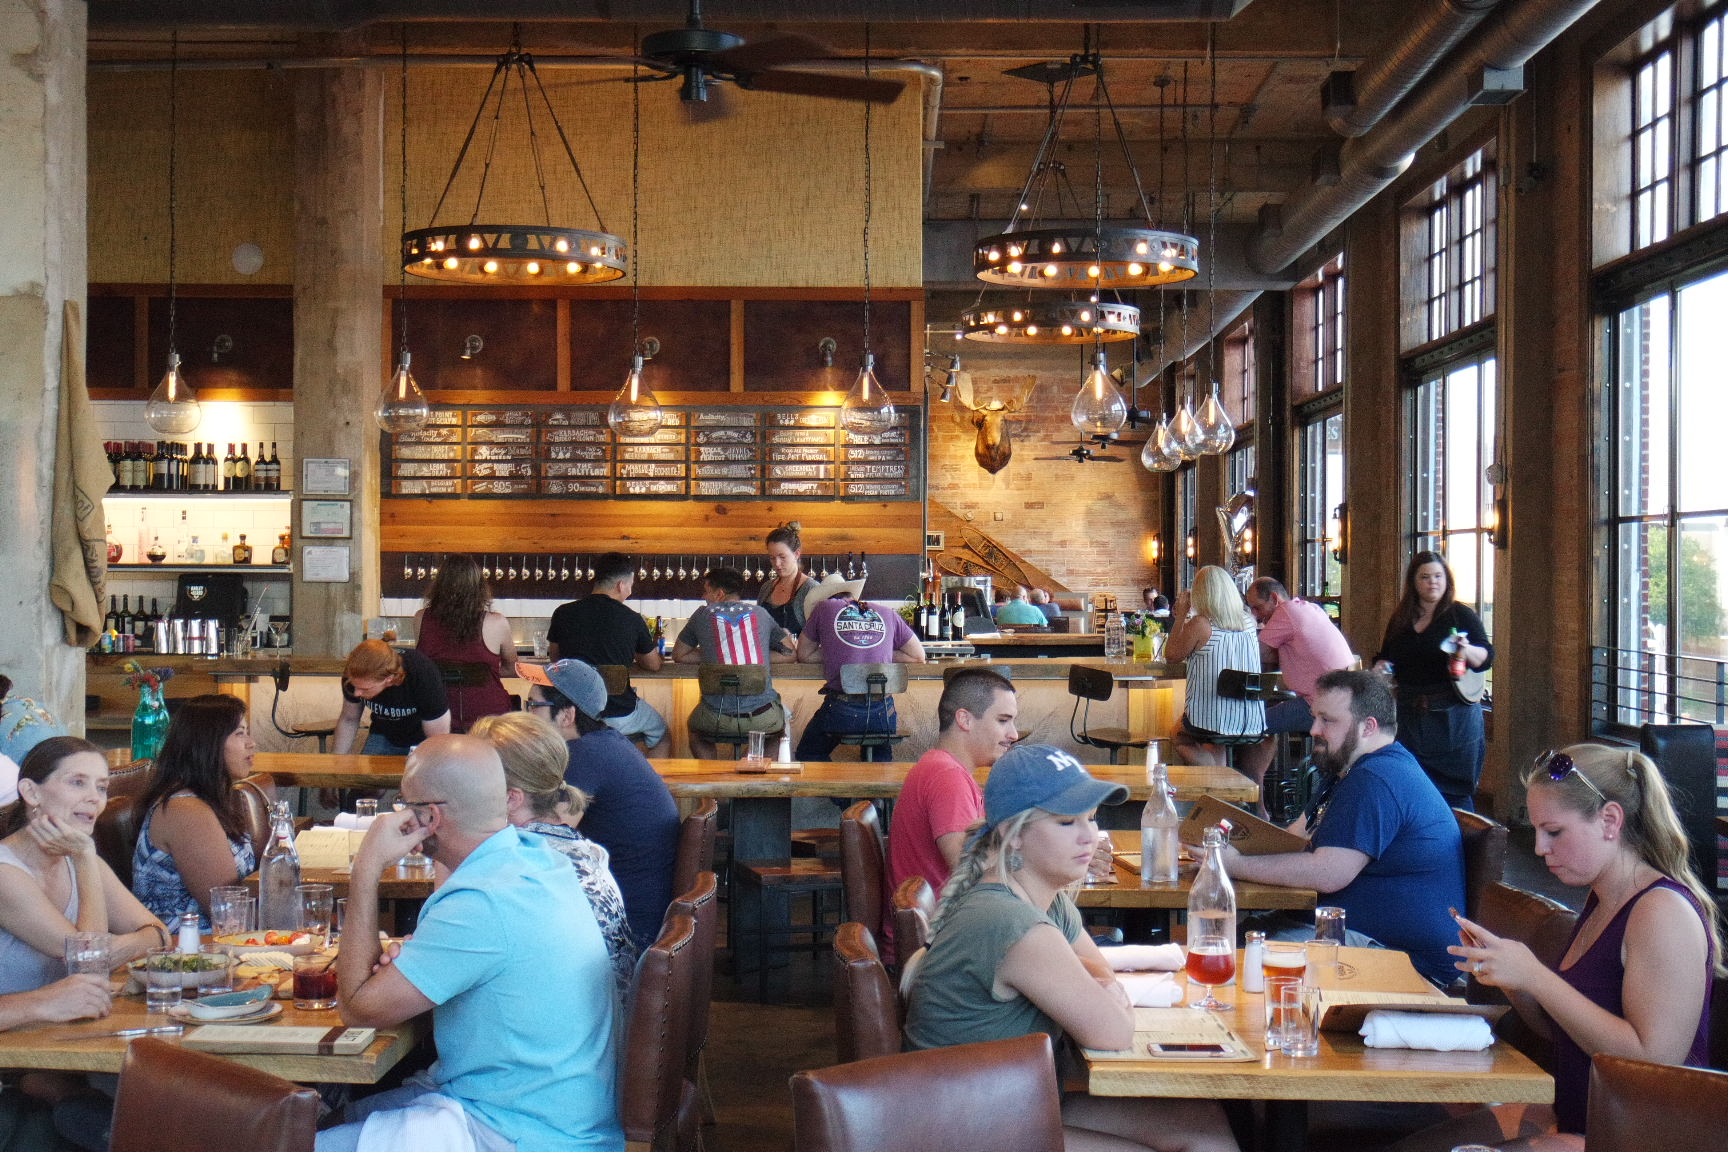 Drink and dine at Barley & Board